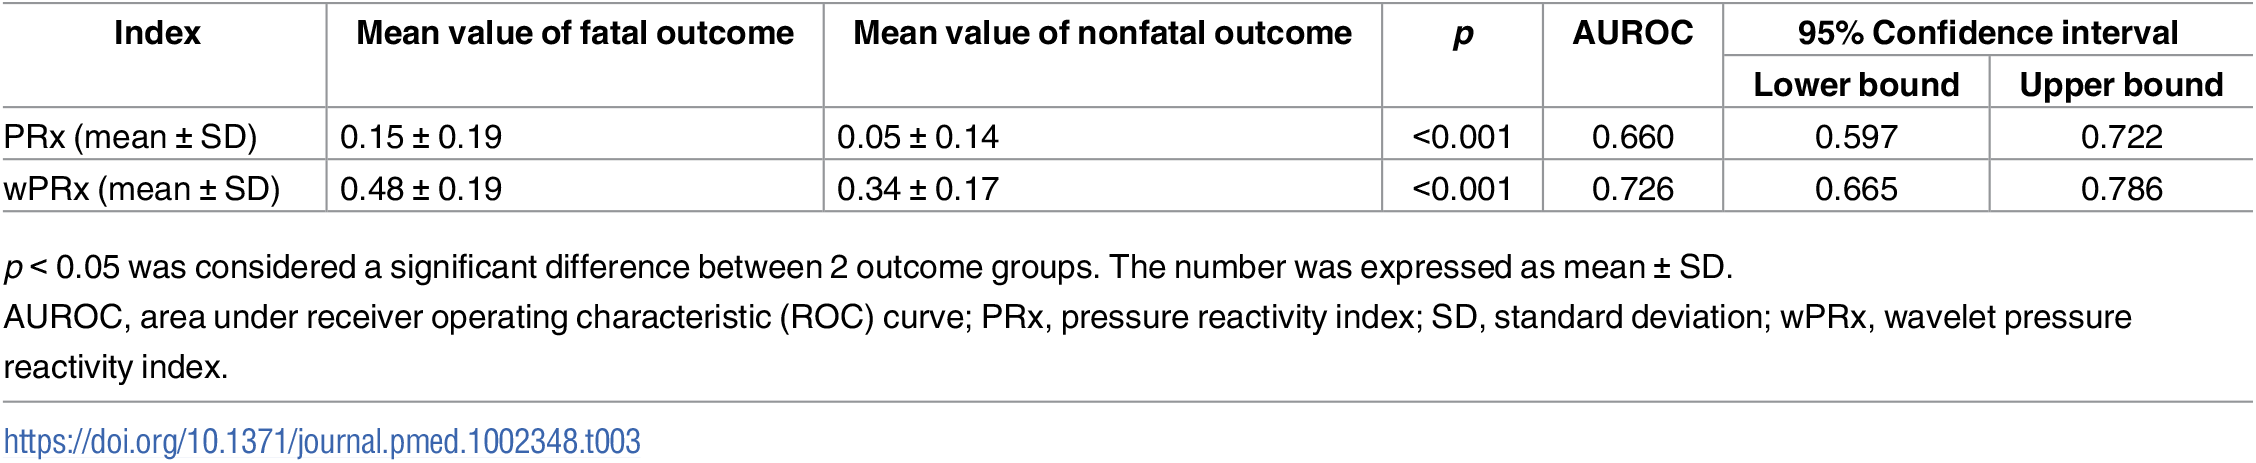 The ability of PRx/wPRx in distinguishing fatal and nonfatal outcomes.